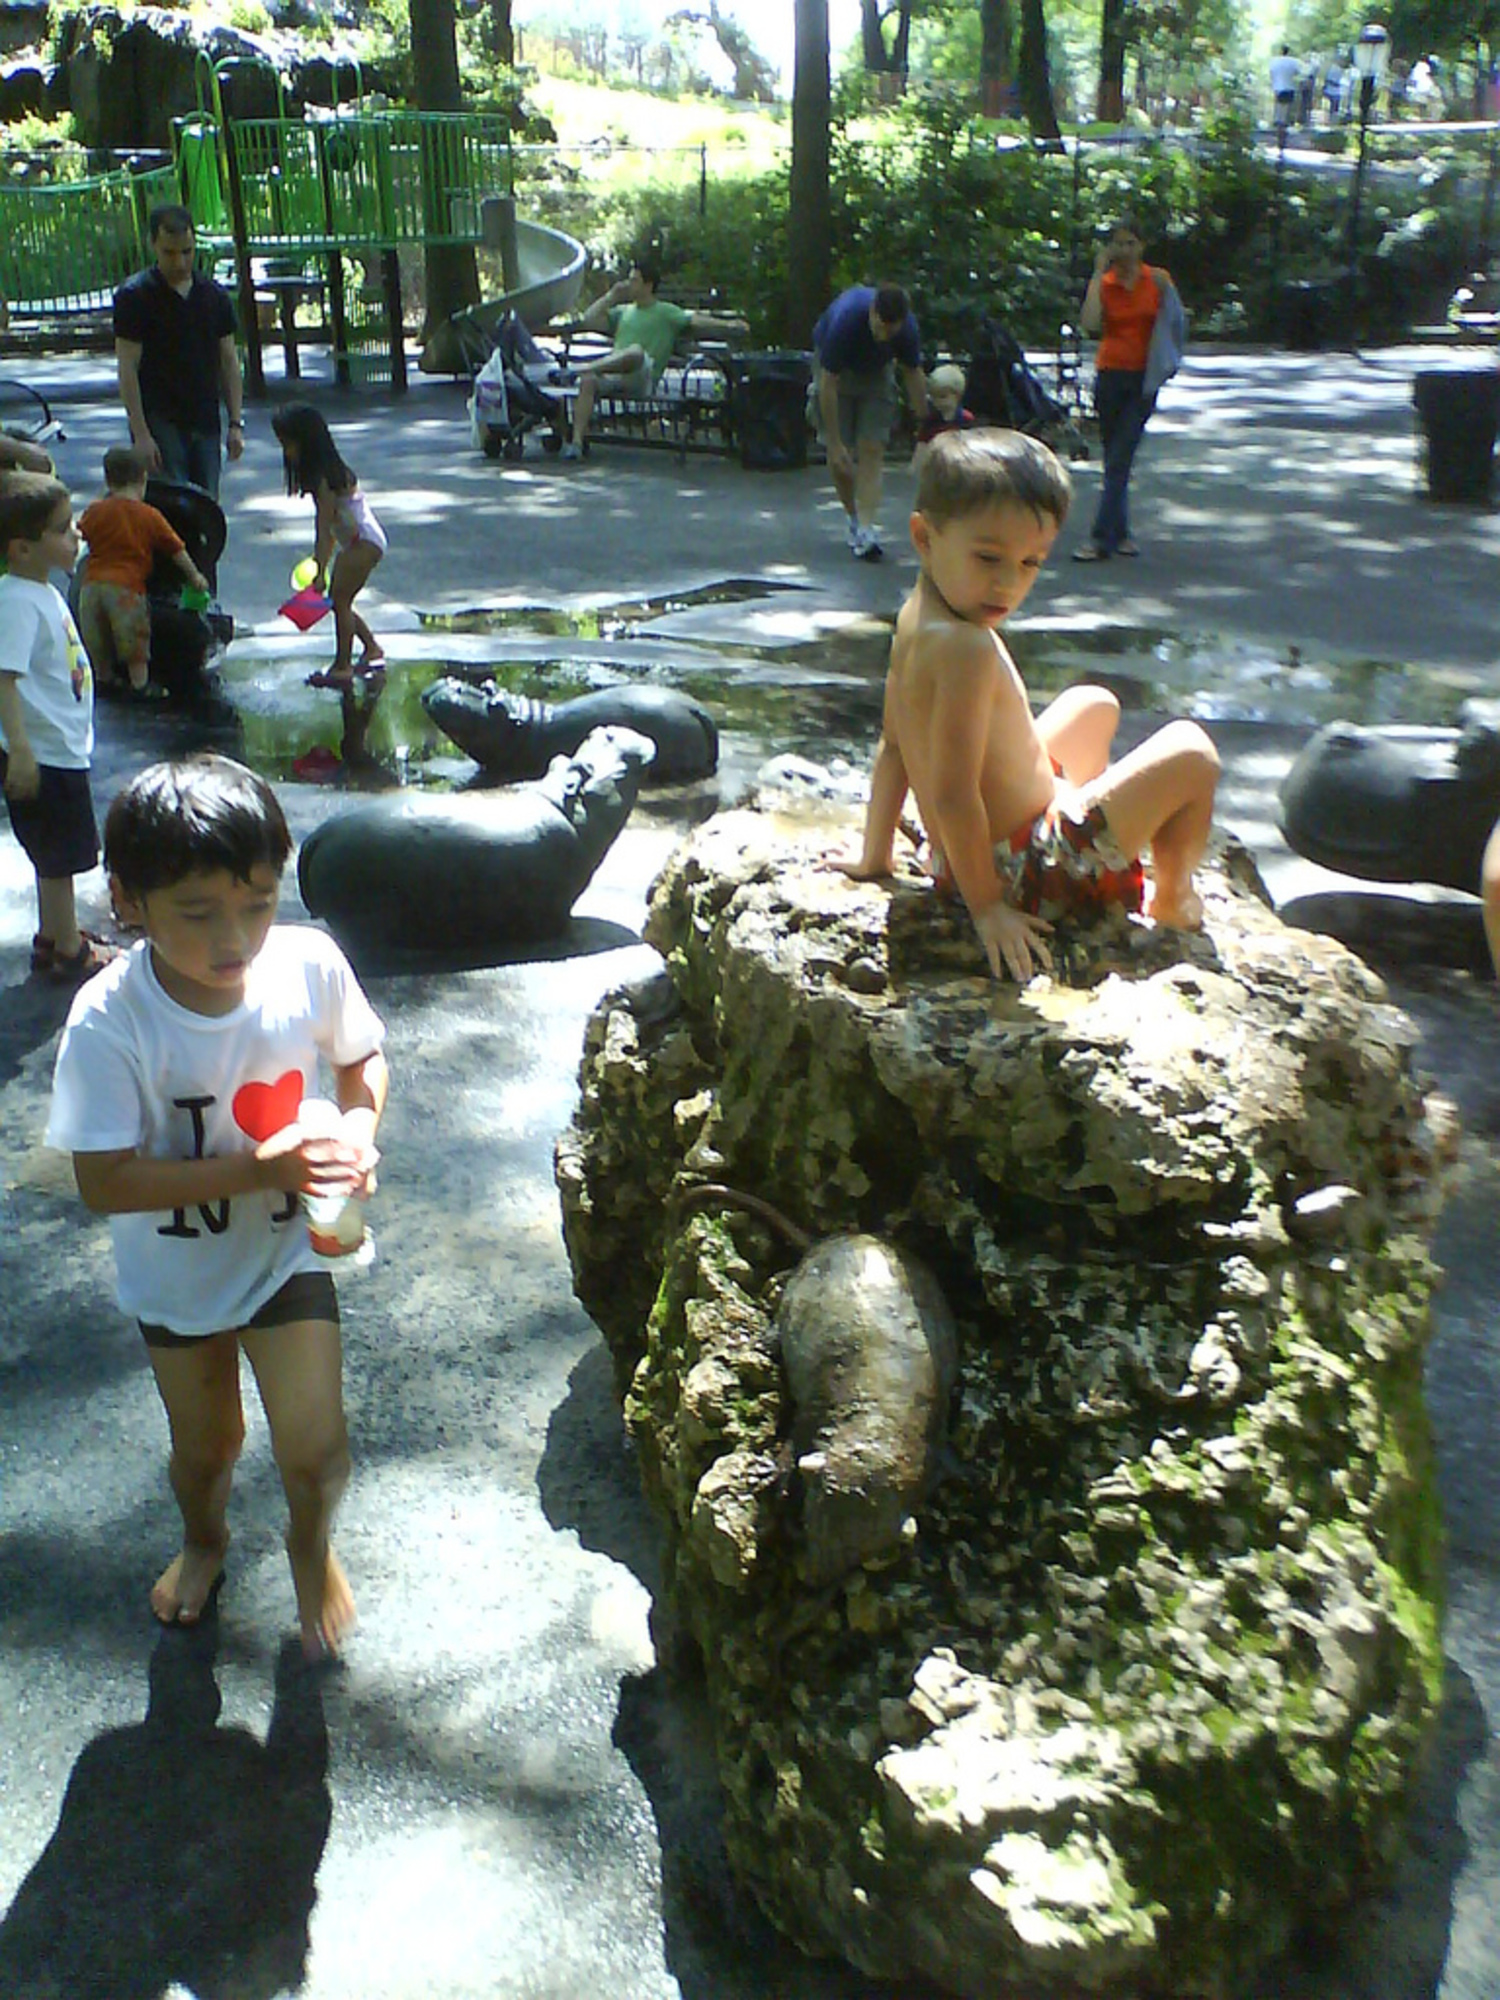 Hippo Playground - Riverside Park, NY | Nice playground, full of shade in the summer. Hippos, turtles, and other critters inhabit this park...